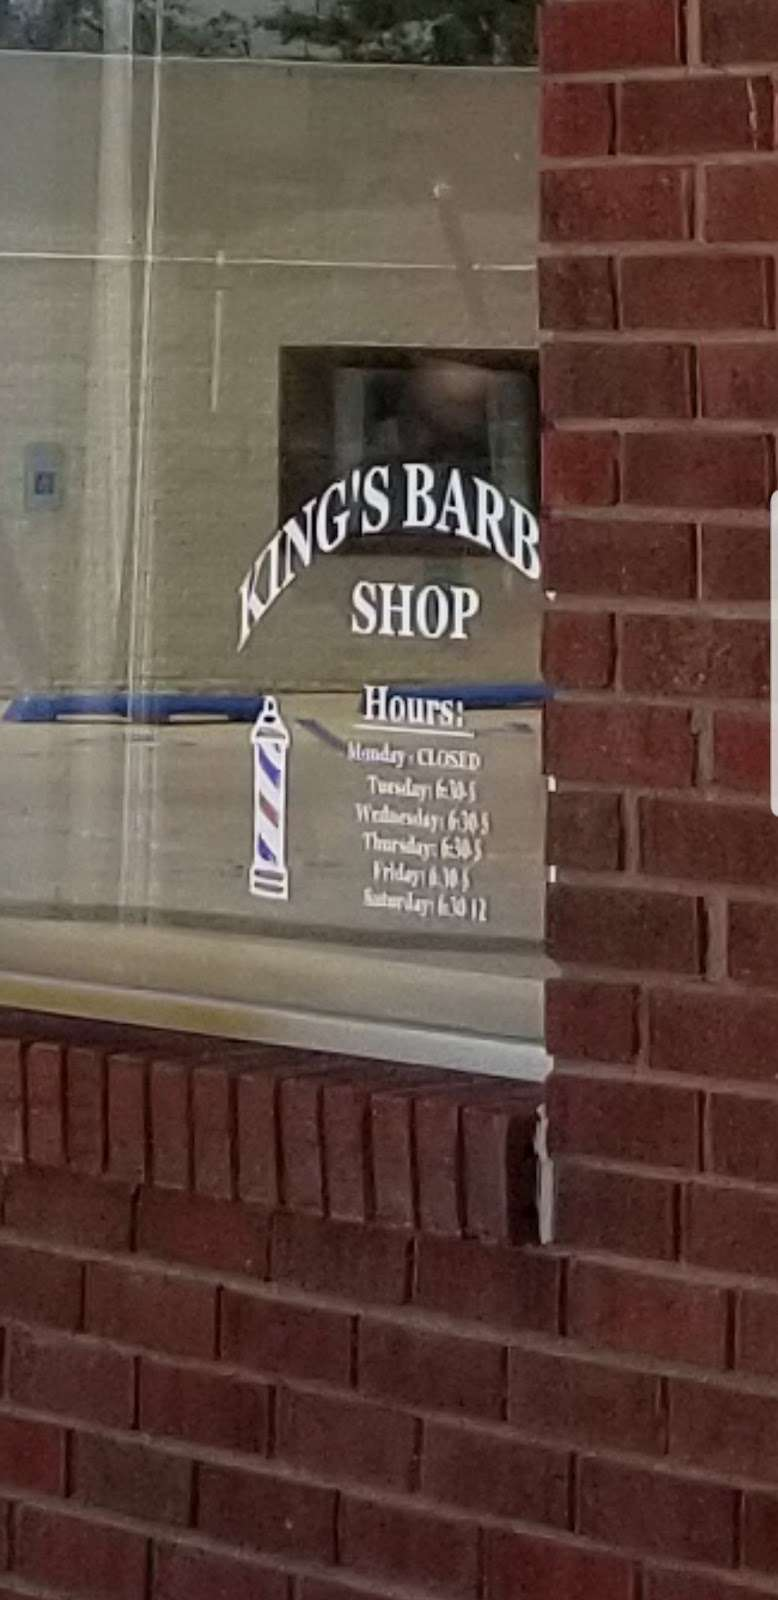 Kings Barber Shop - hair care  | Photo 2 of 2 | Address: 399-301 E 3rd St, Cameron, MO 64429, USA | Phone: (816) 632-3732